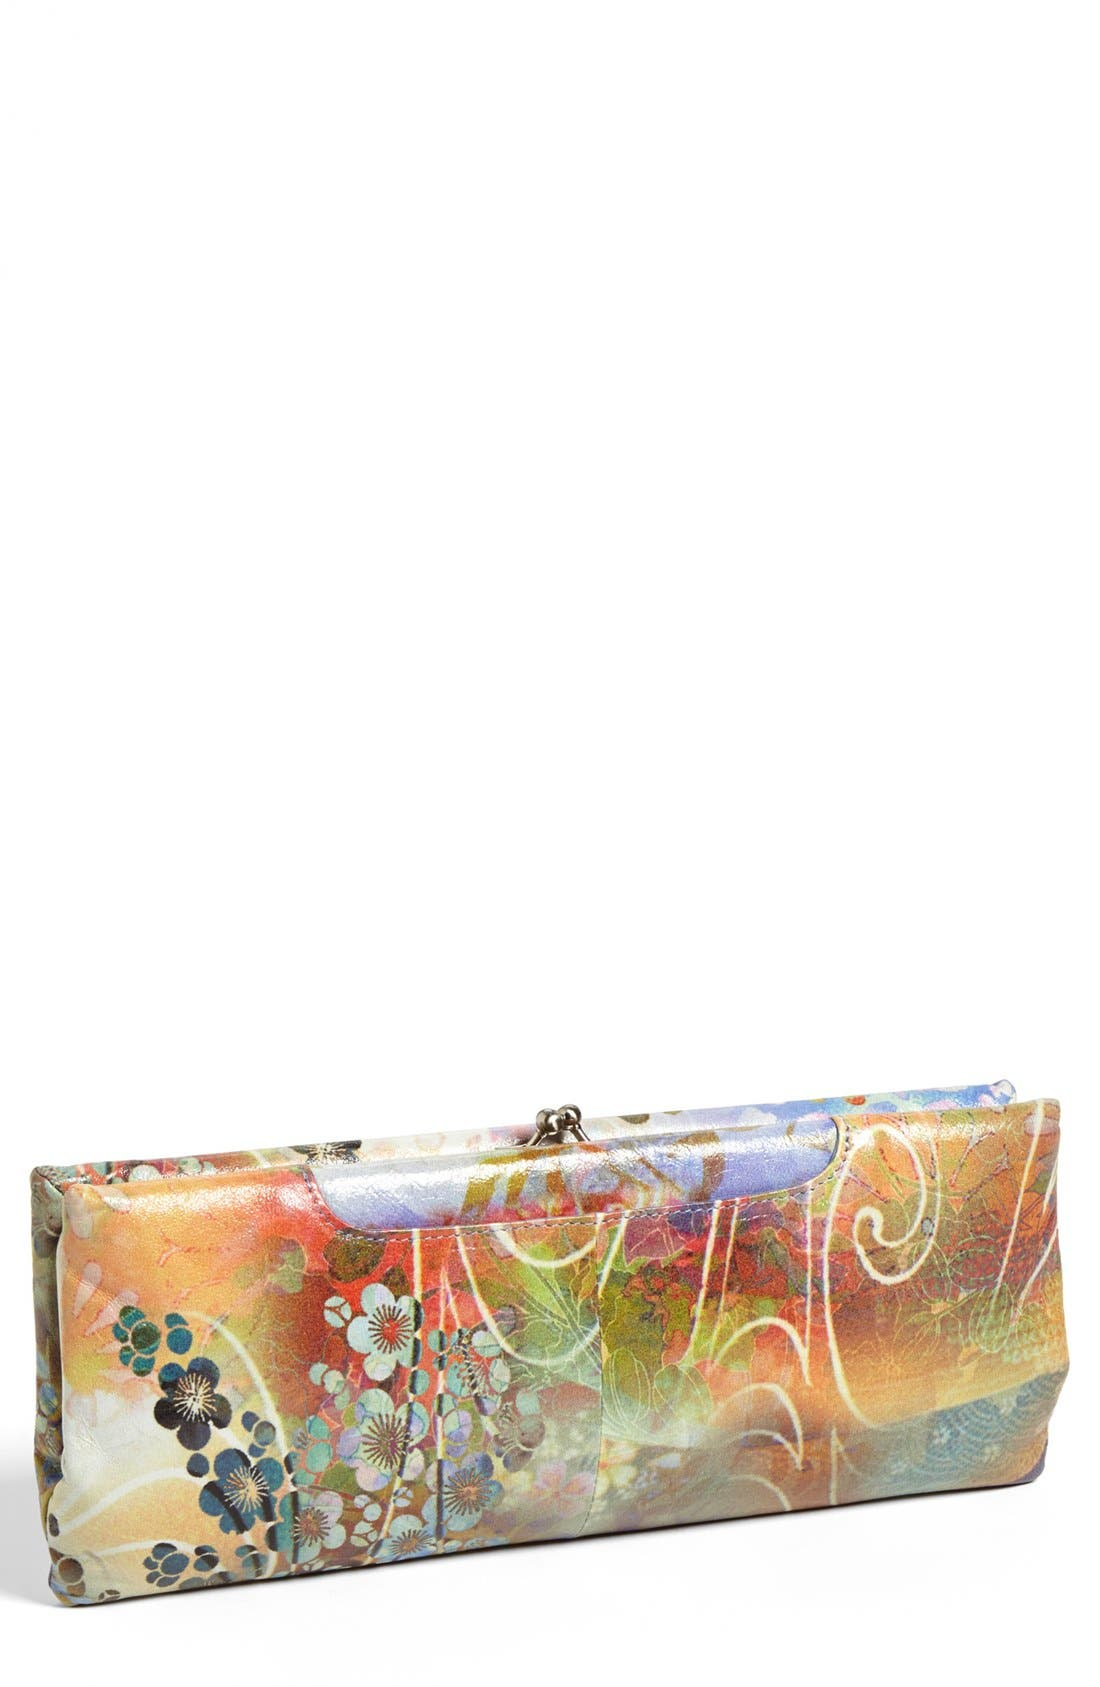 Main Image - Hobo 'Adelyn' Kiss Lock Clutch Wallet